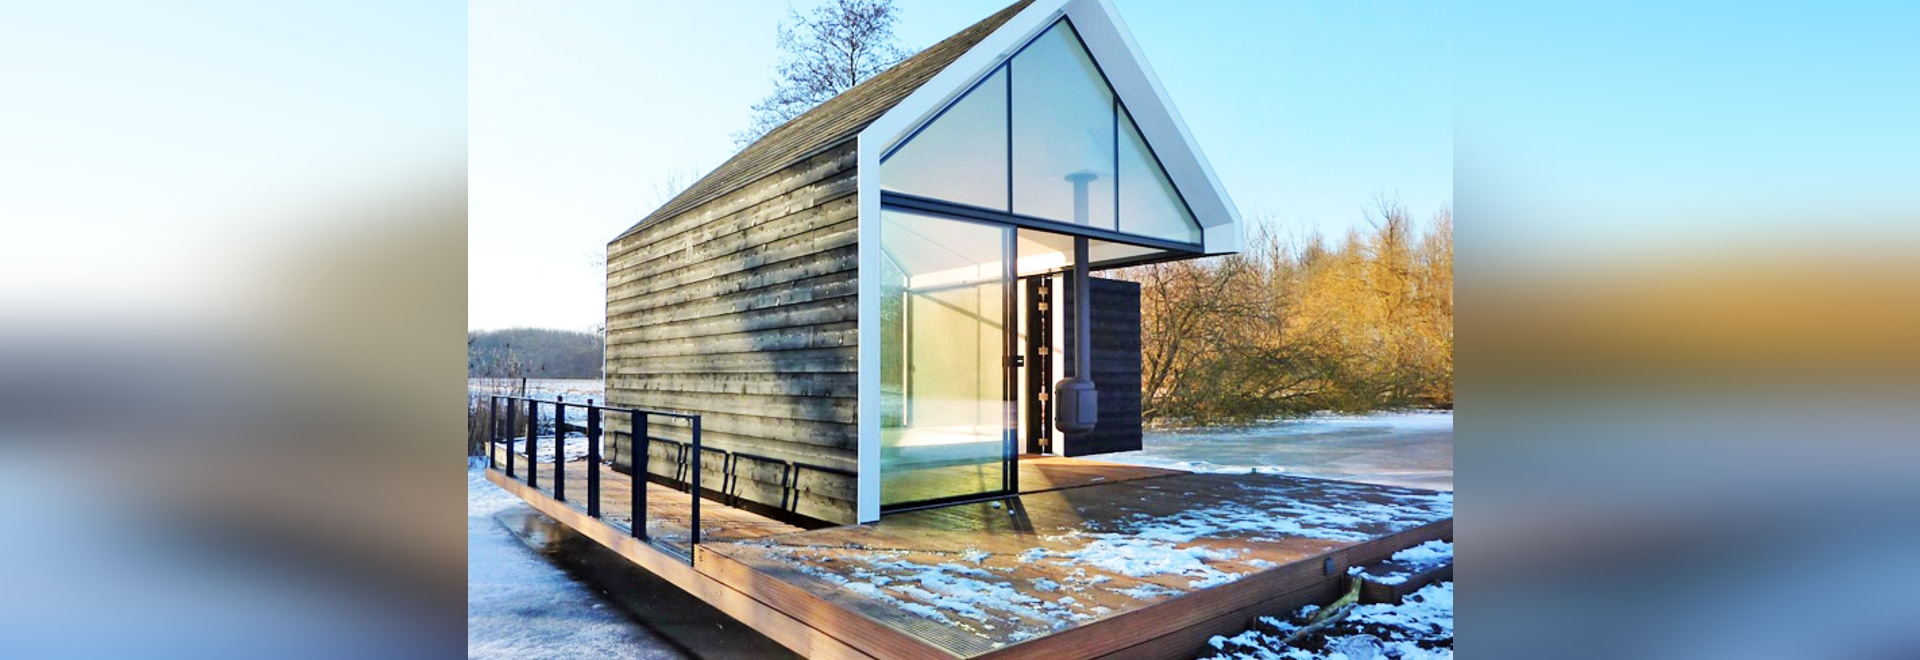 Tiny Glass and Timber Cabin Cleverly Folds Open to Blend in With the Dutch Landscape